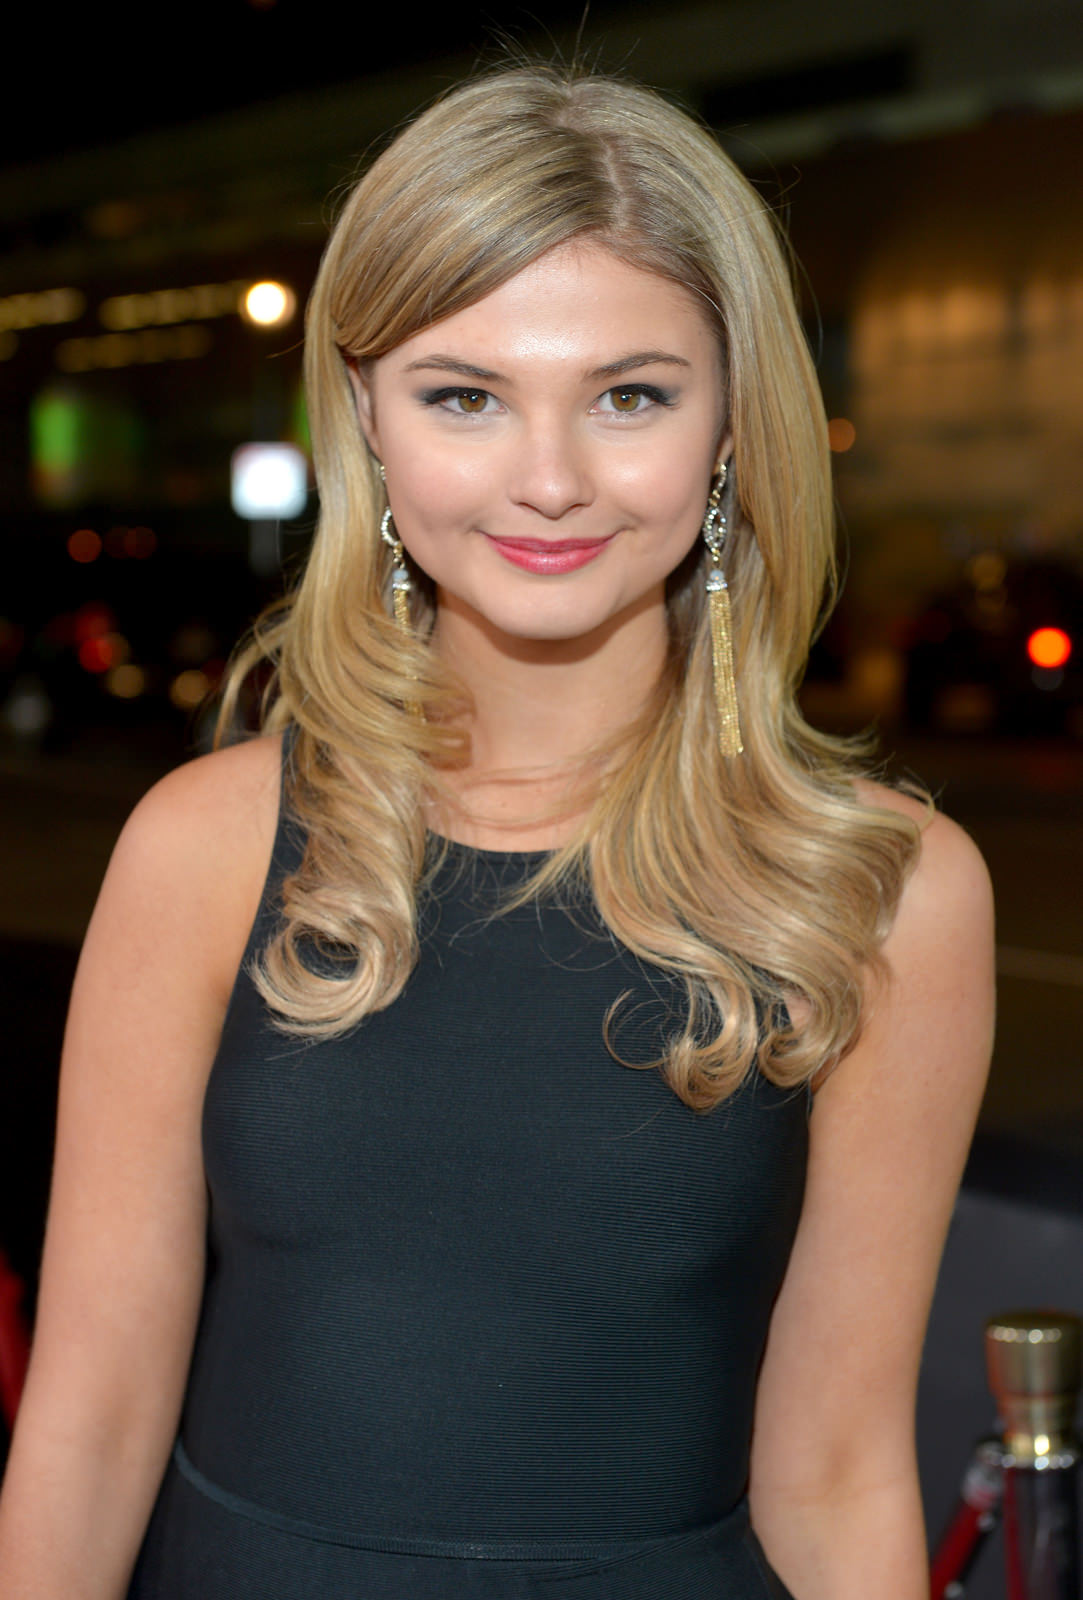 Stefanie Scott Photo Gallery